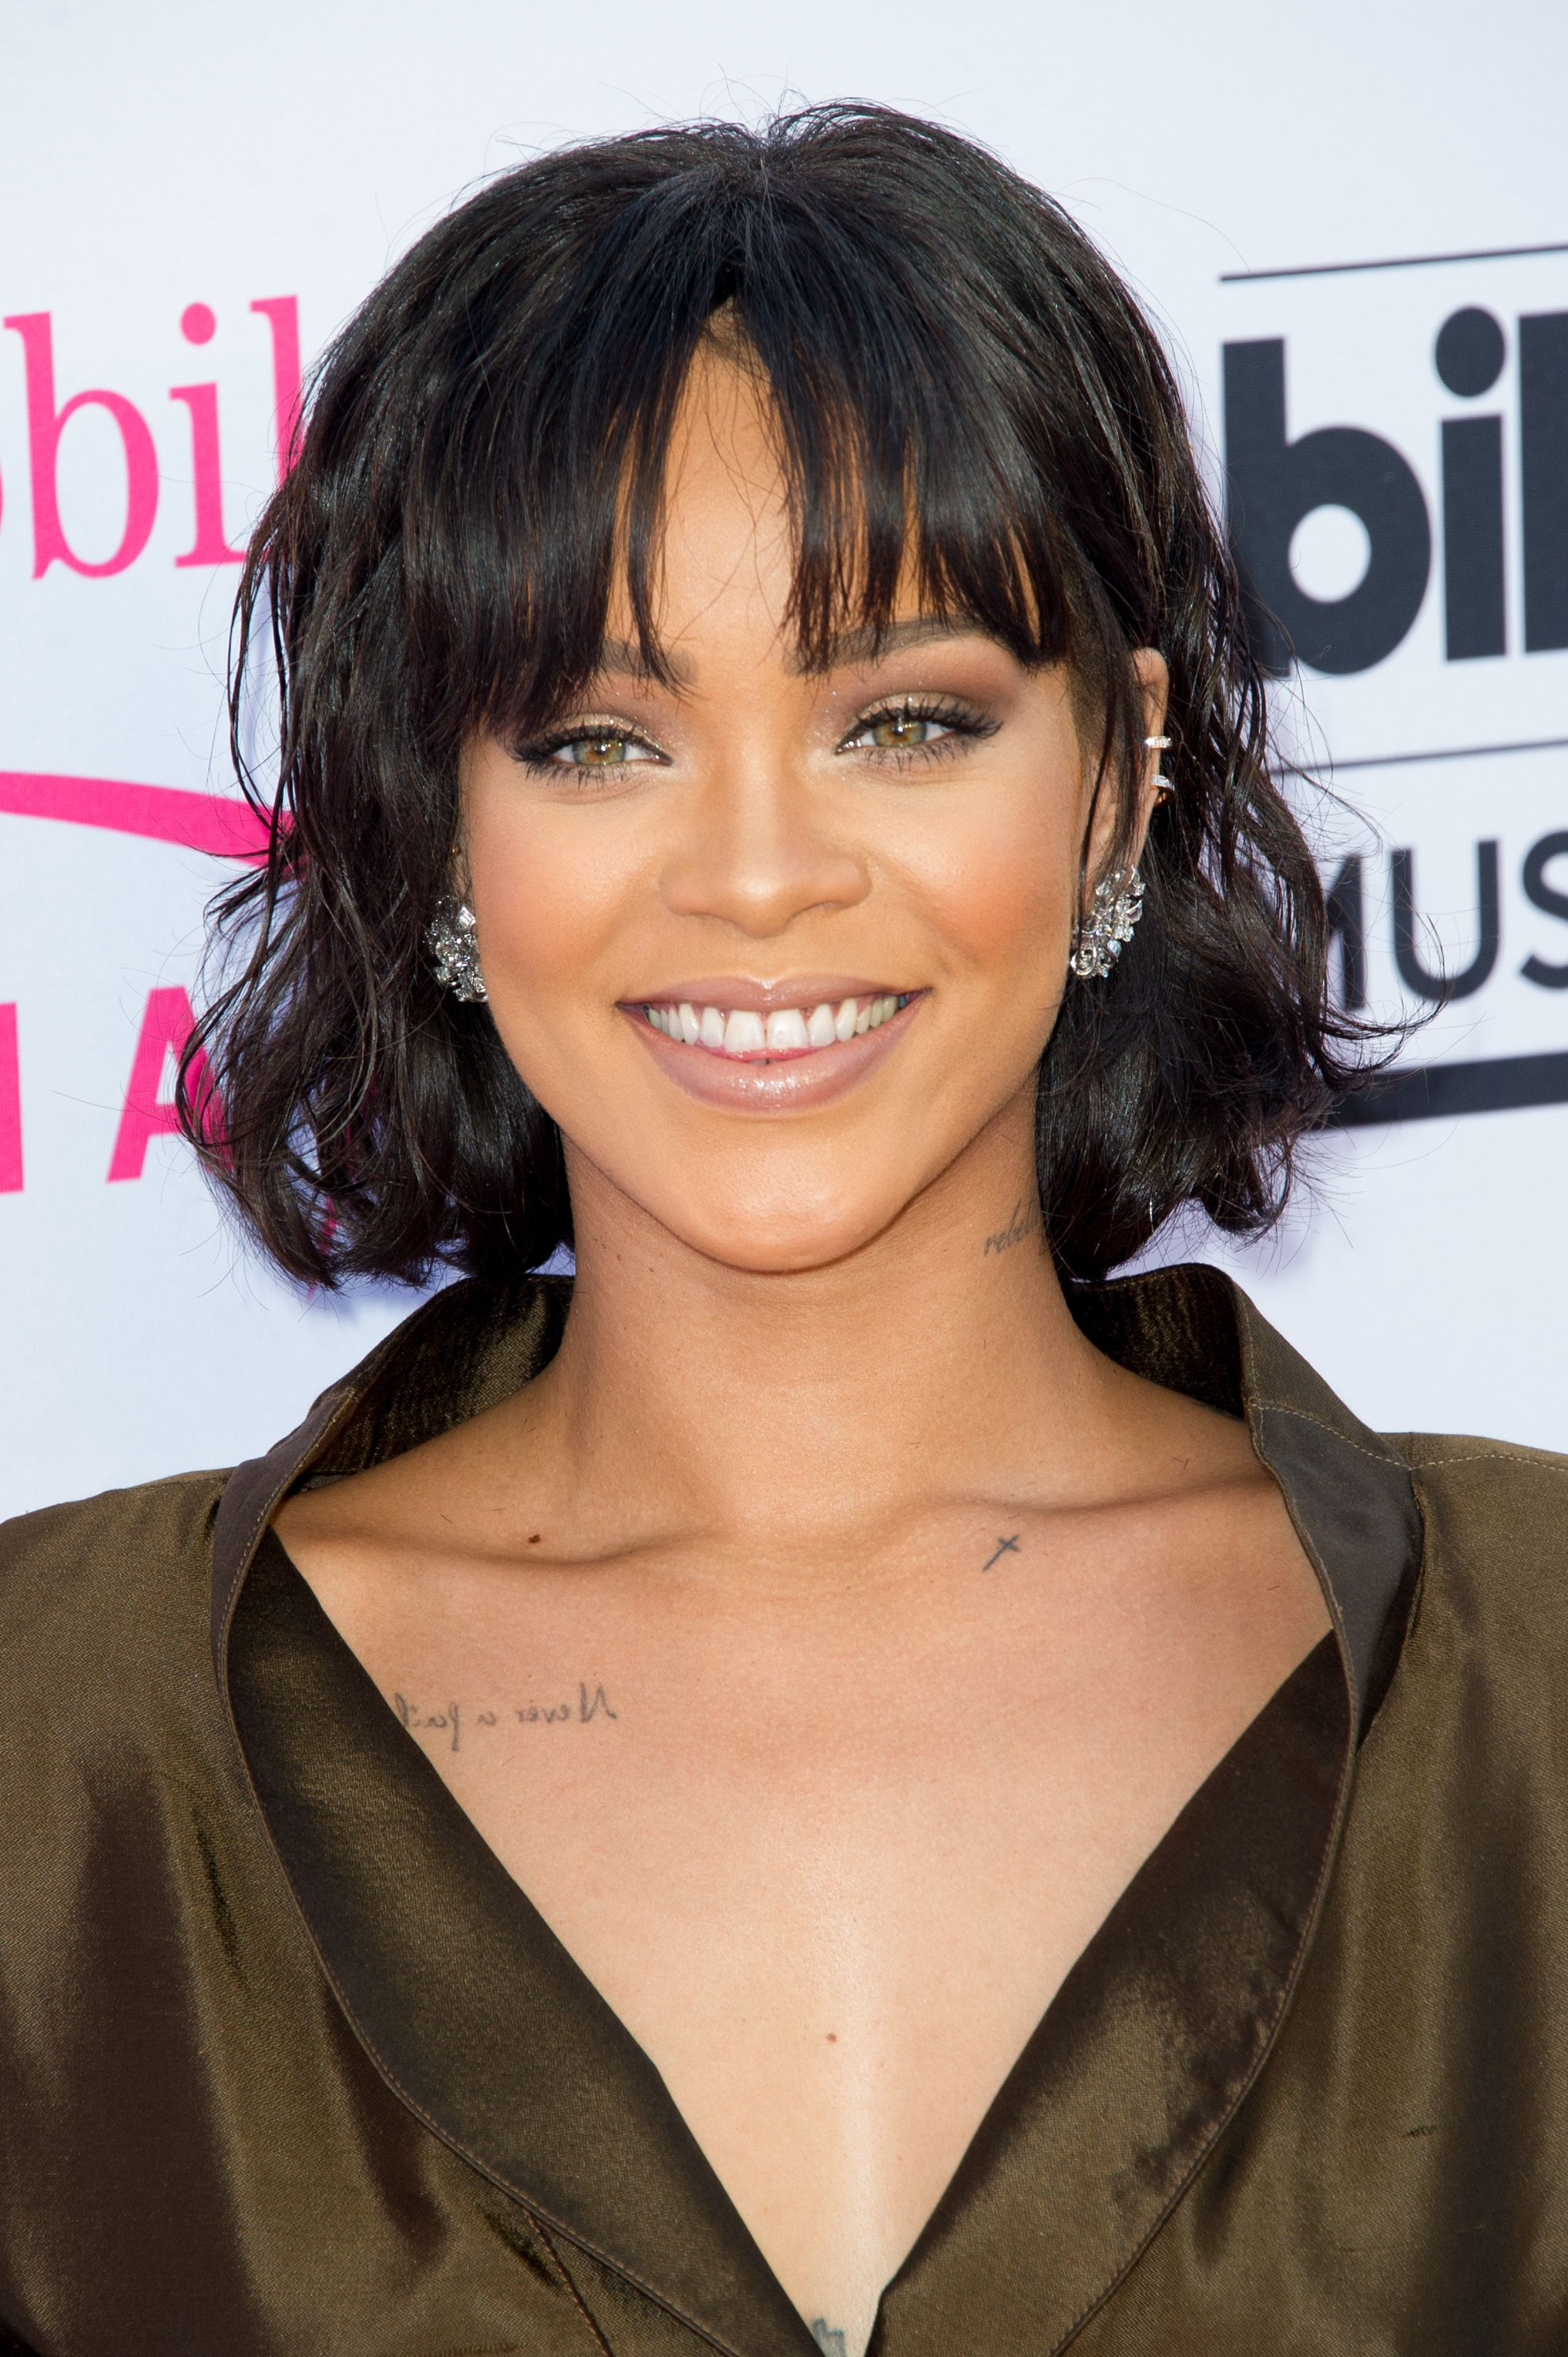 104 hairstyles with bangs you'll want to copy - celebrity haircuts